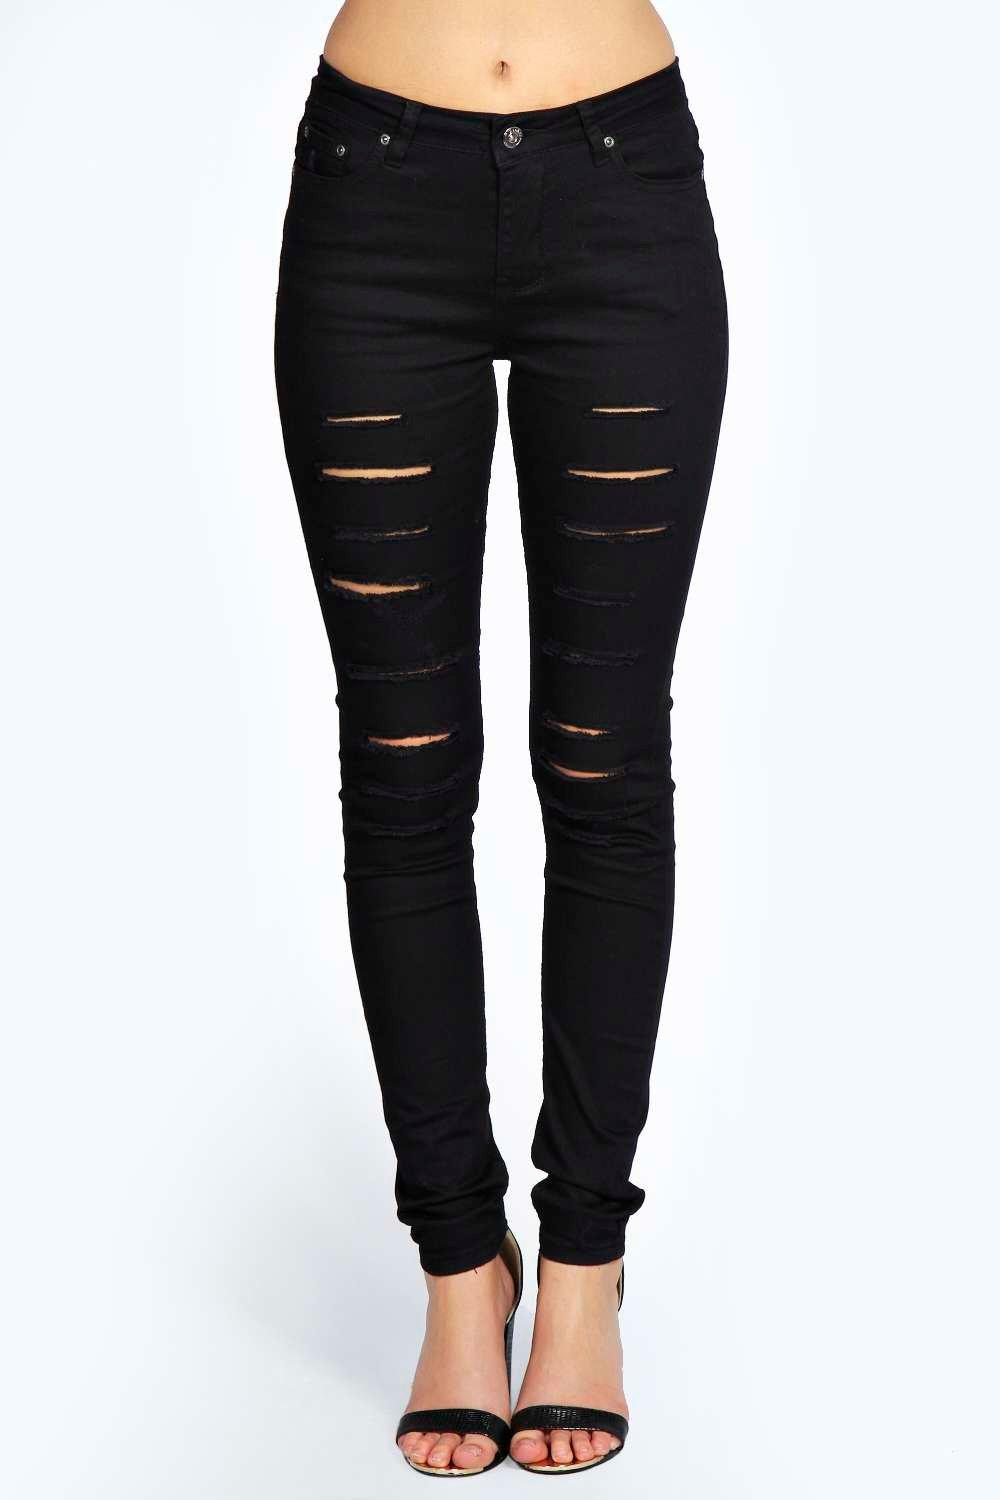 Black Extreme Ripped Skinny Return to Previous Page; InDot. Black Extreme Ripped Skinny Jeans. Availability: In stock. SKU: Chic $ $ This offer ends in: Flash Sale Deals 26% Off. Free Standard Shipping Worldwide *Size Size Chart.